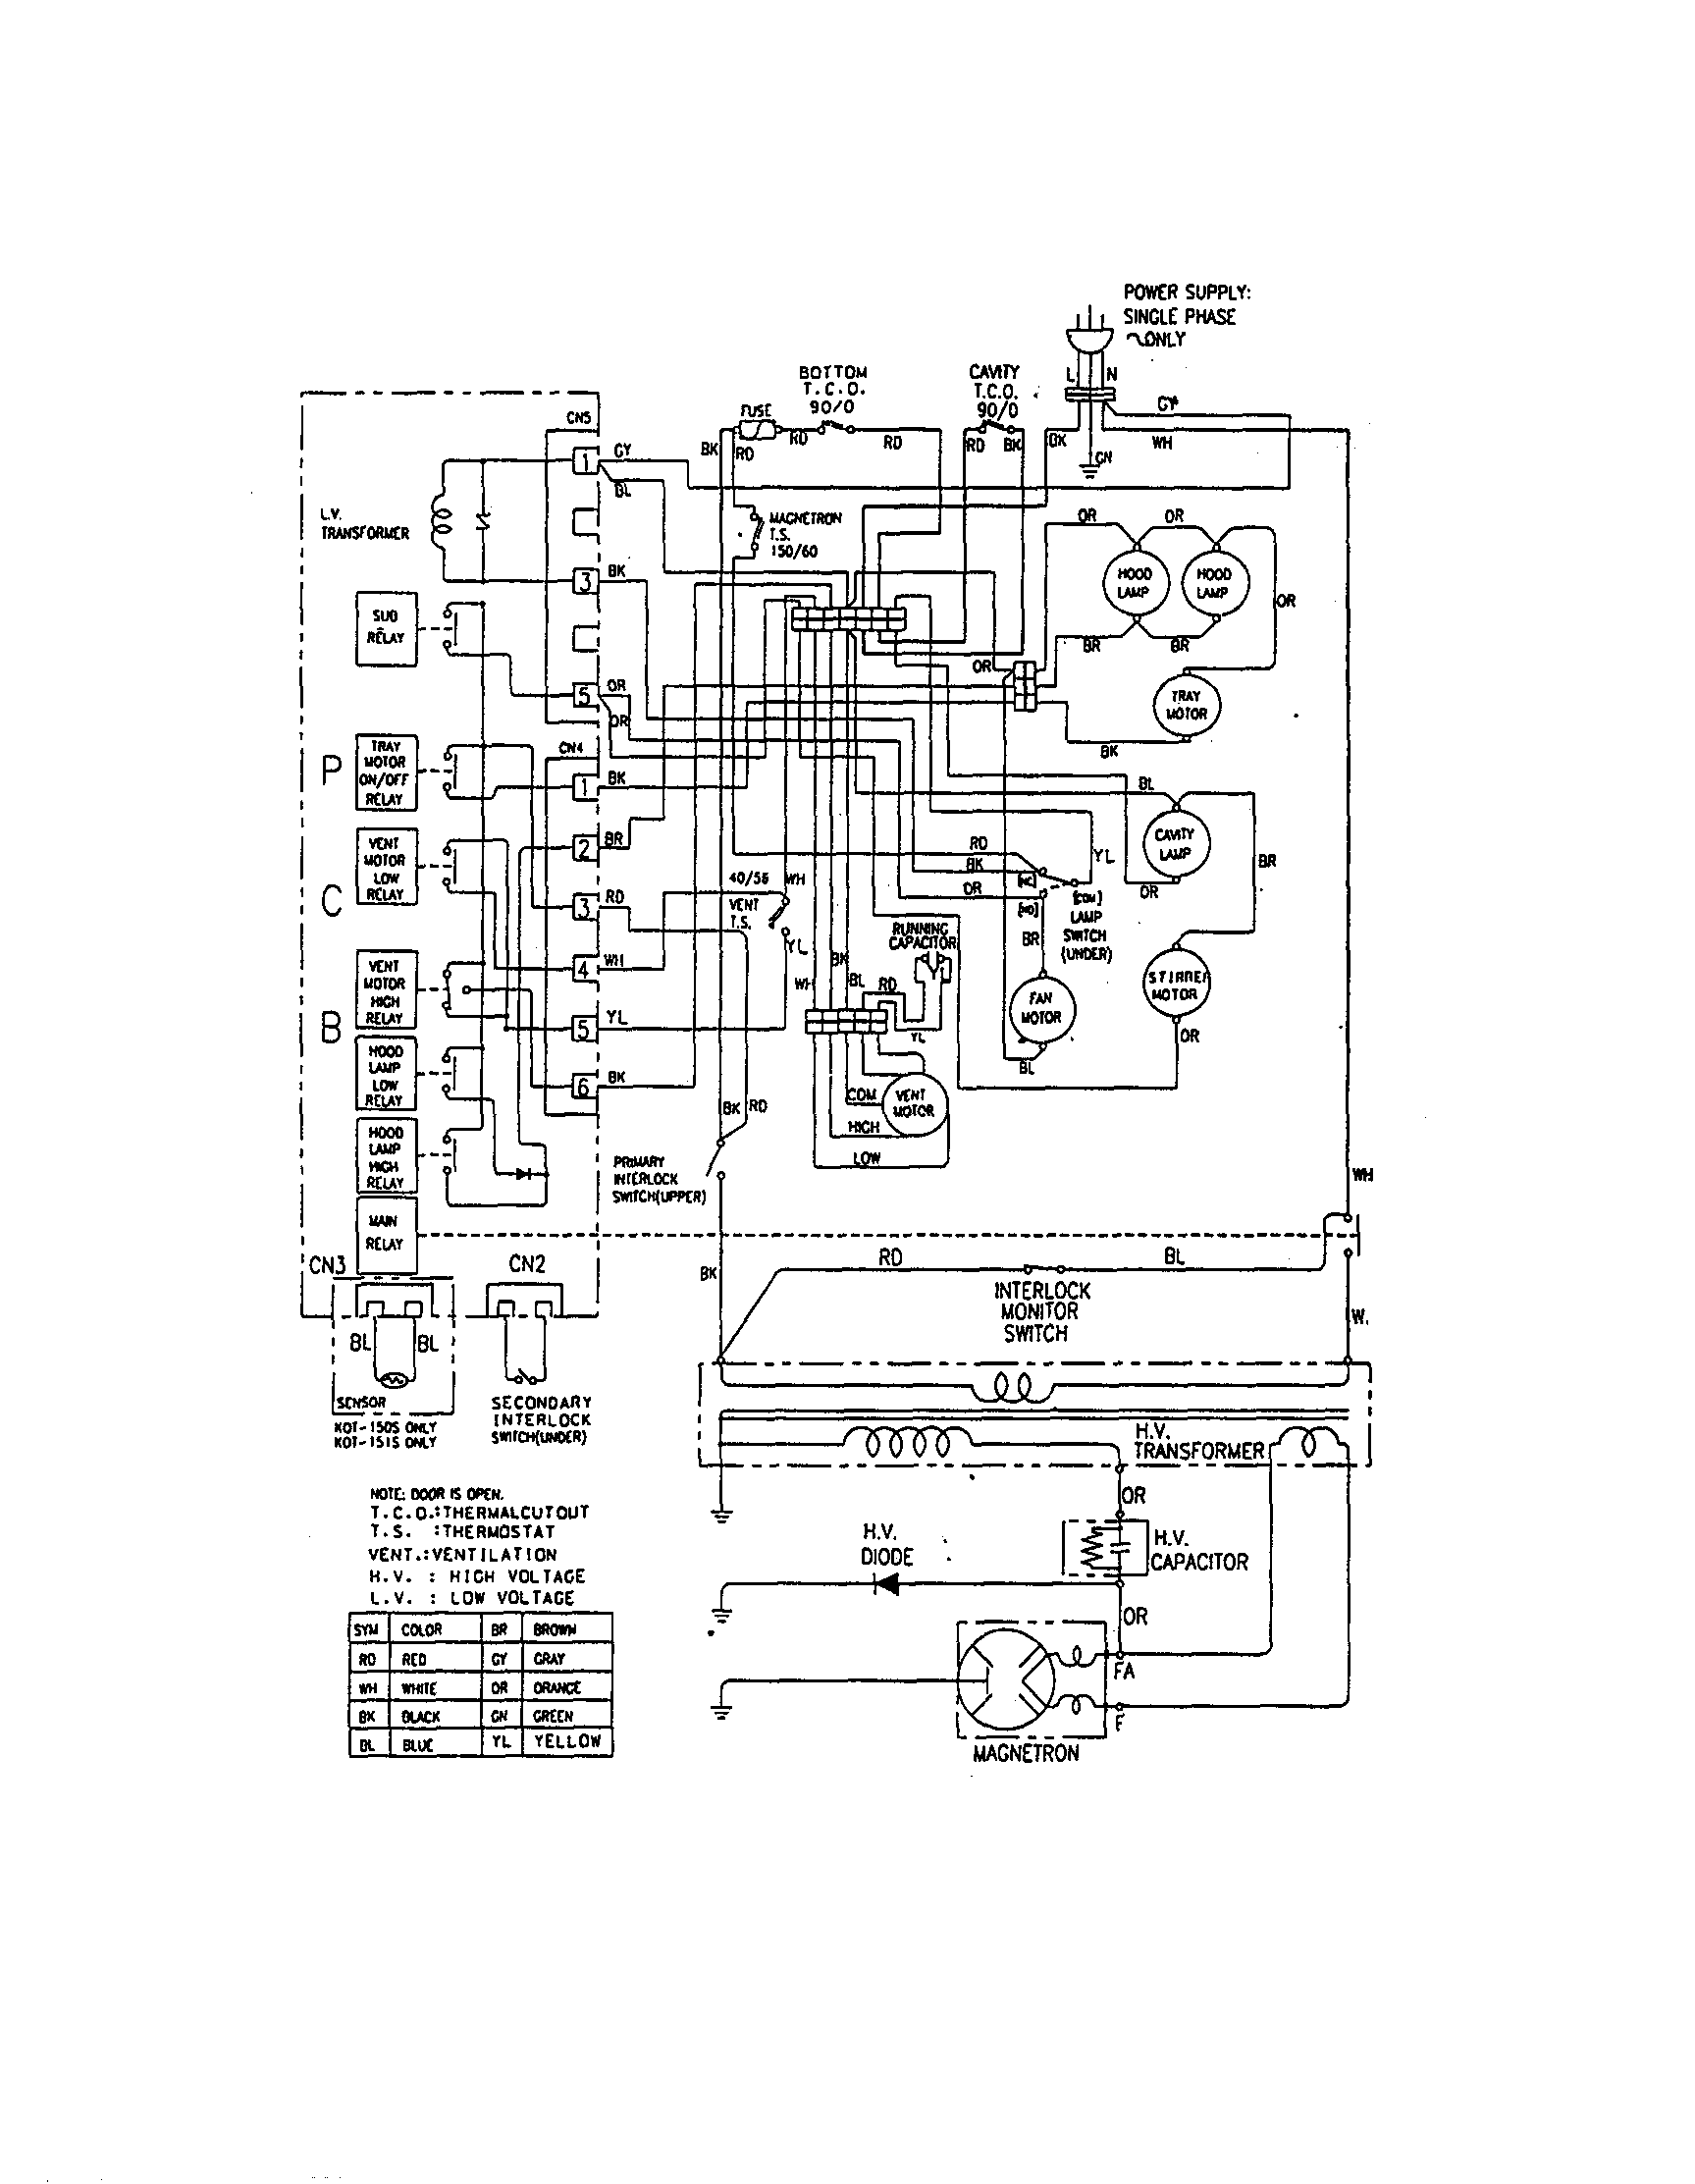 WIRING Diagram & Parts List for Model mmv5000baw Maytag